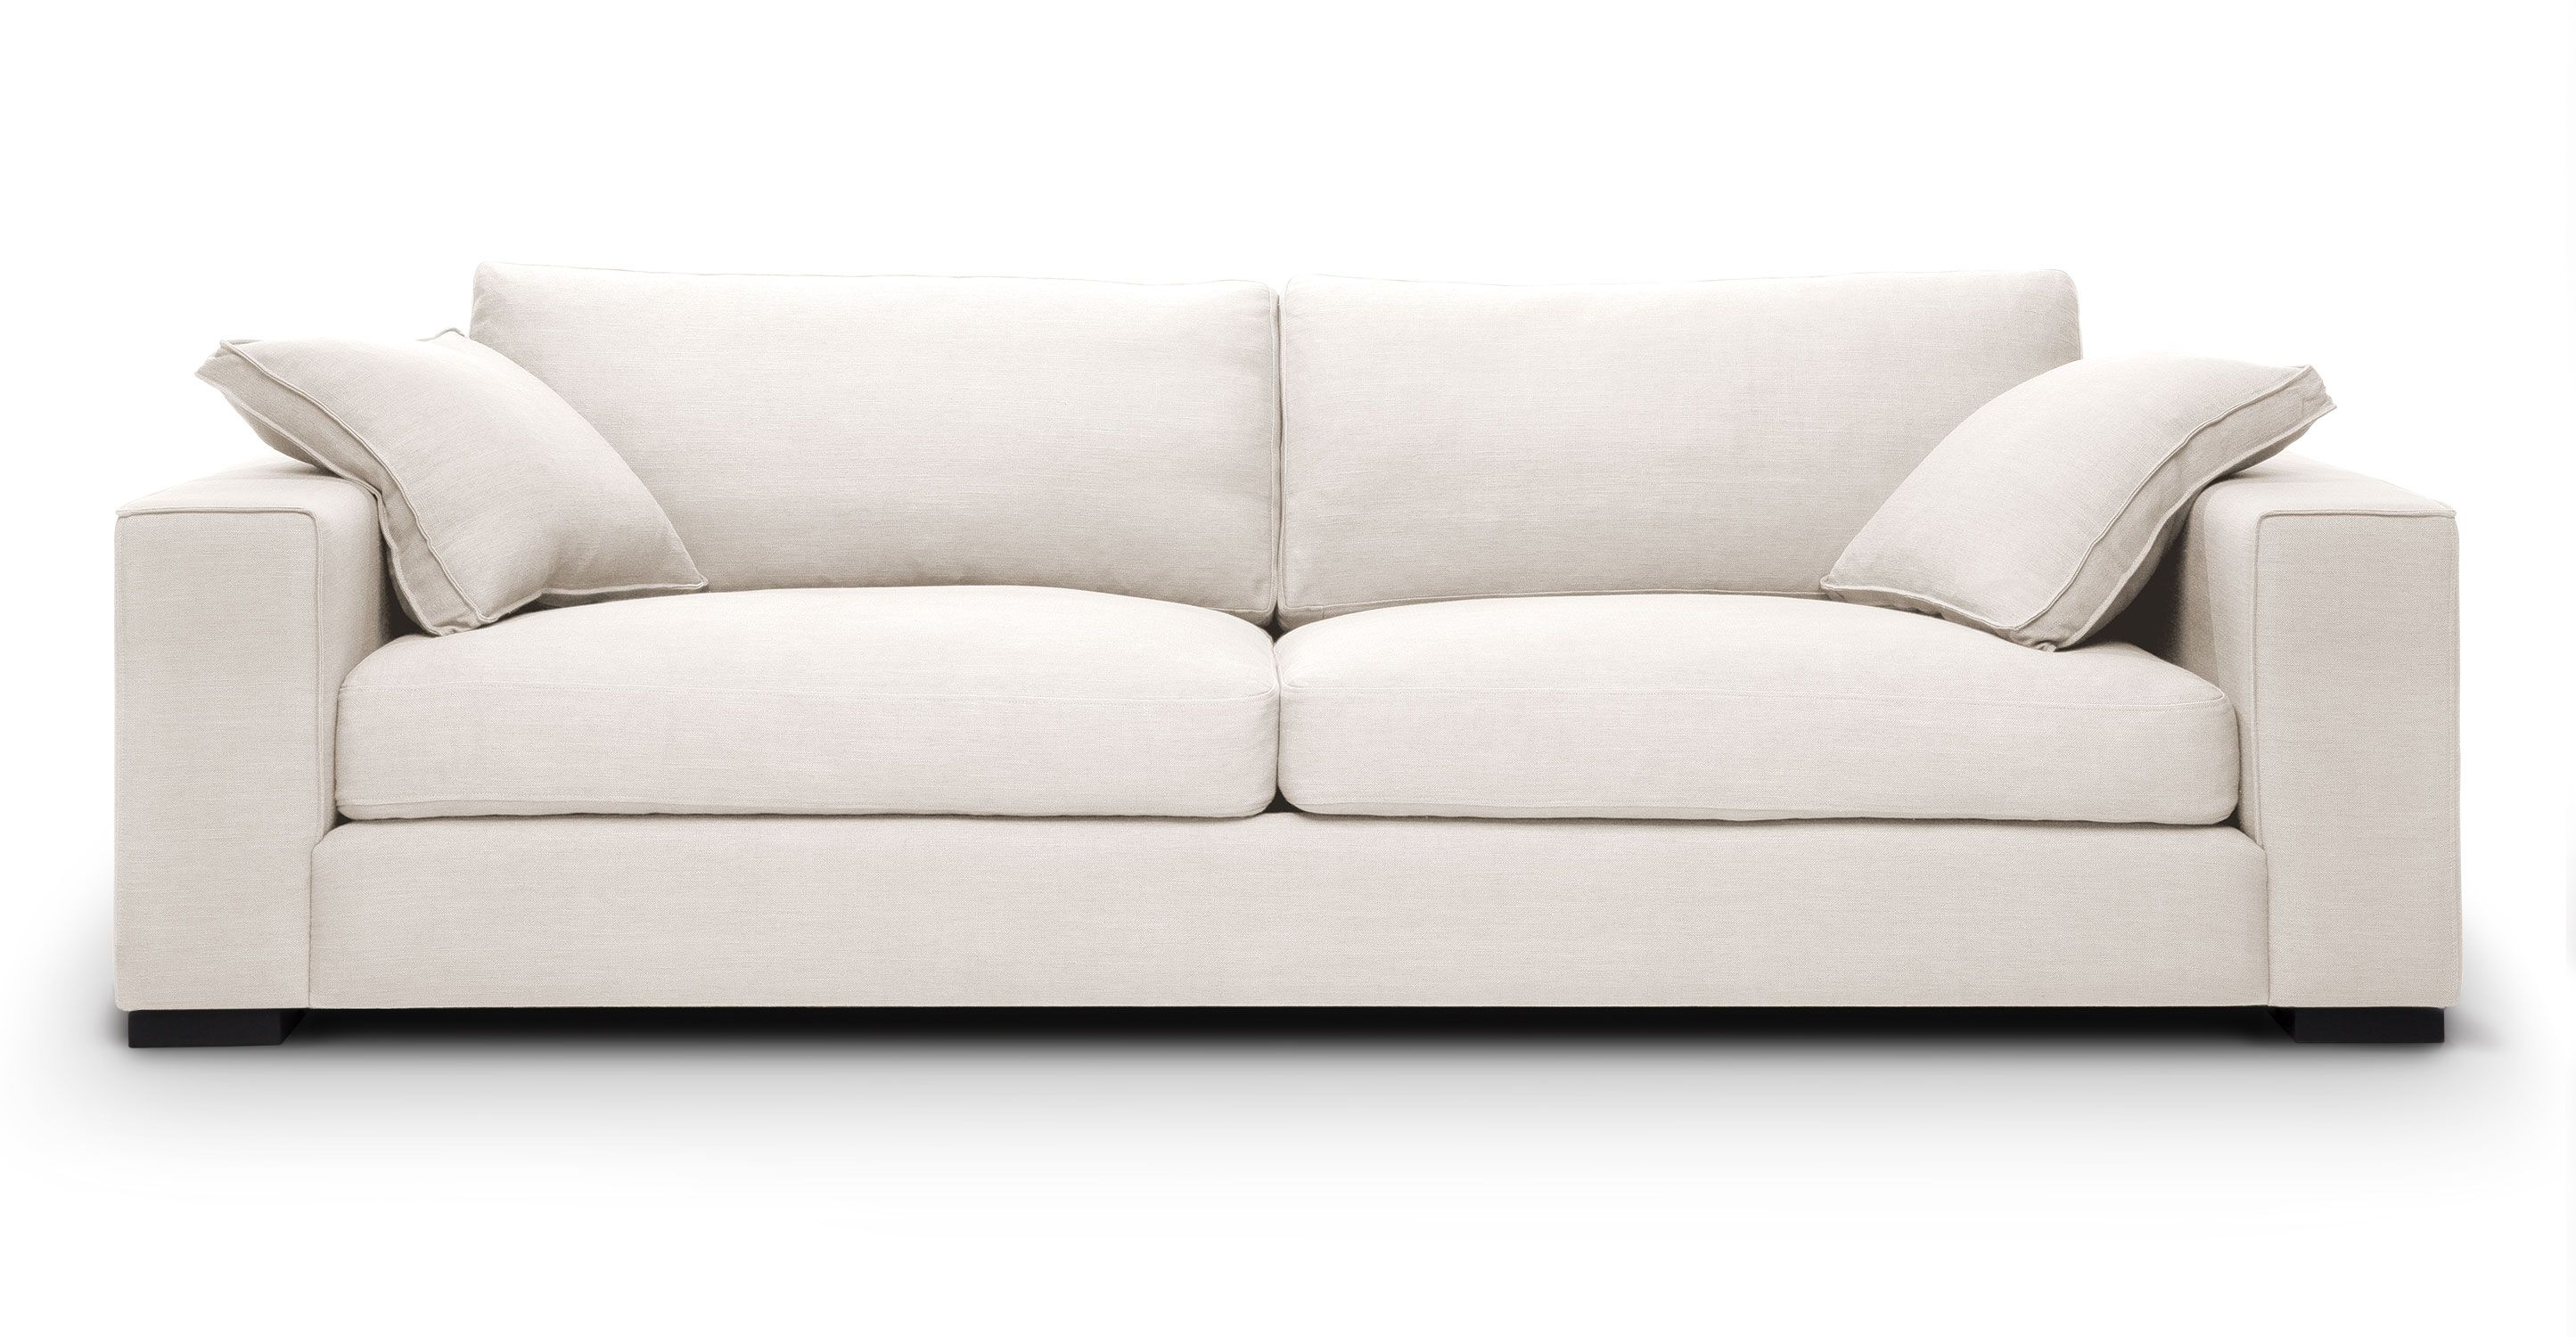 Sitka Quartz White Sofa | Patty A Living | White sofas ...